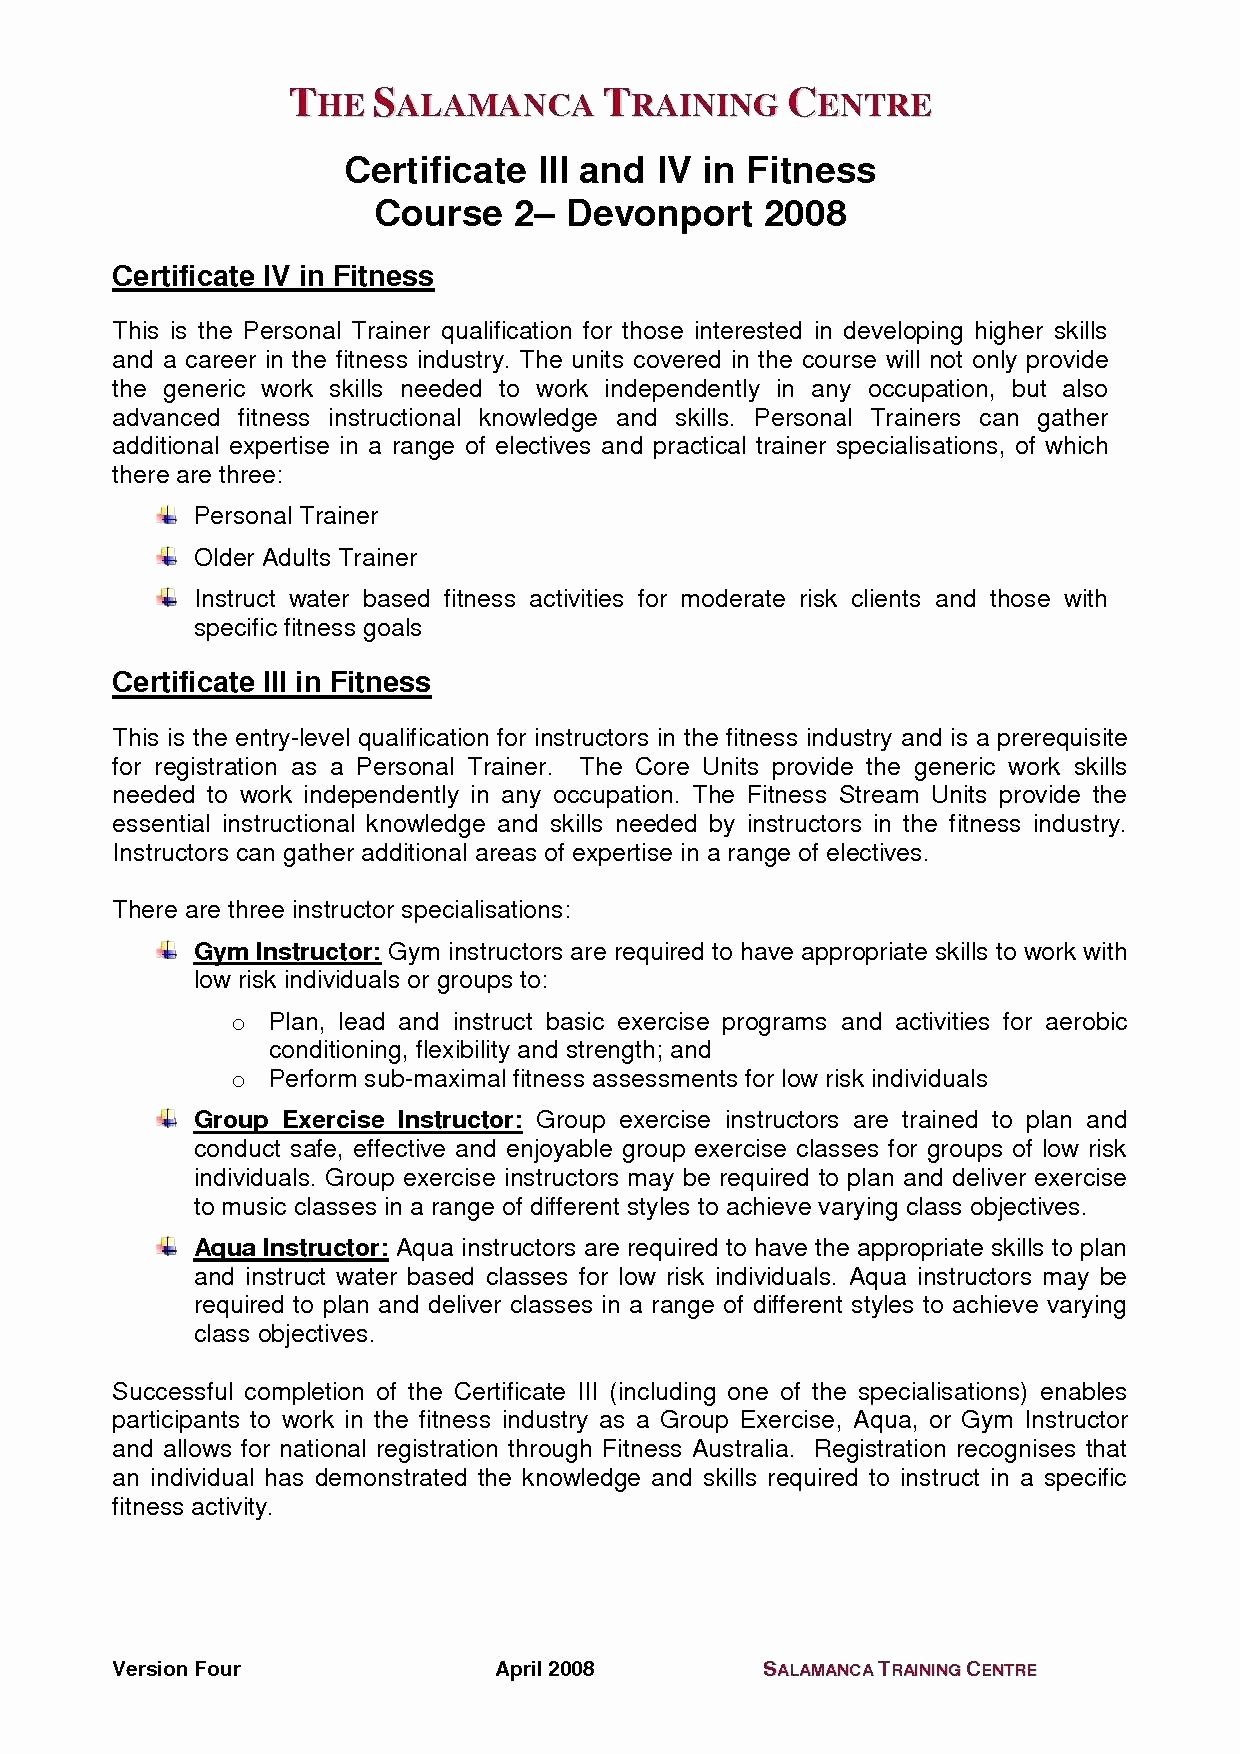 Resume Help Near Me - Resume Help Near Me Awesome Help with Resume Inspirational Technical